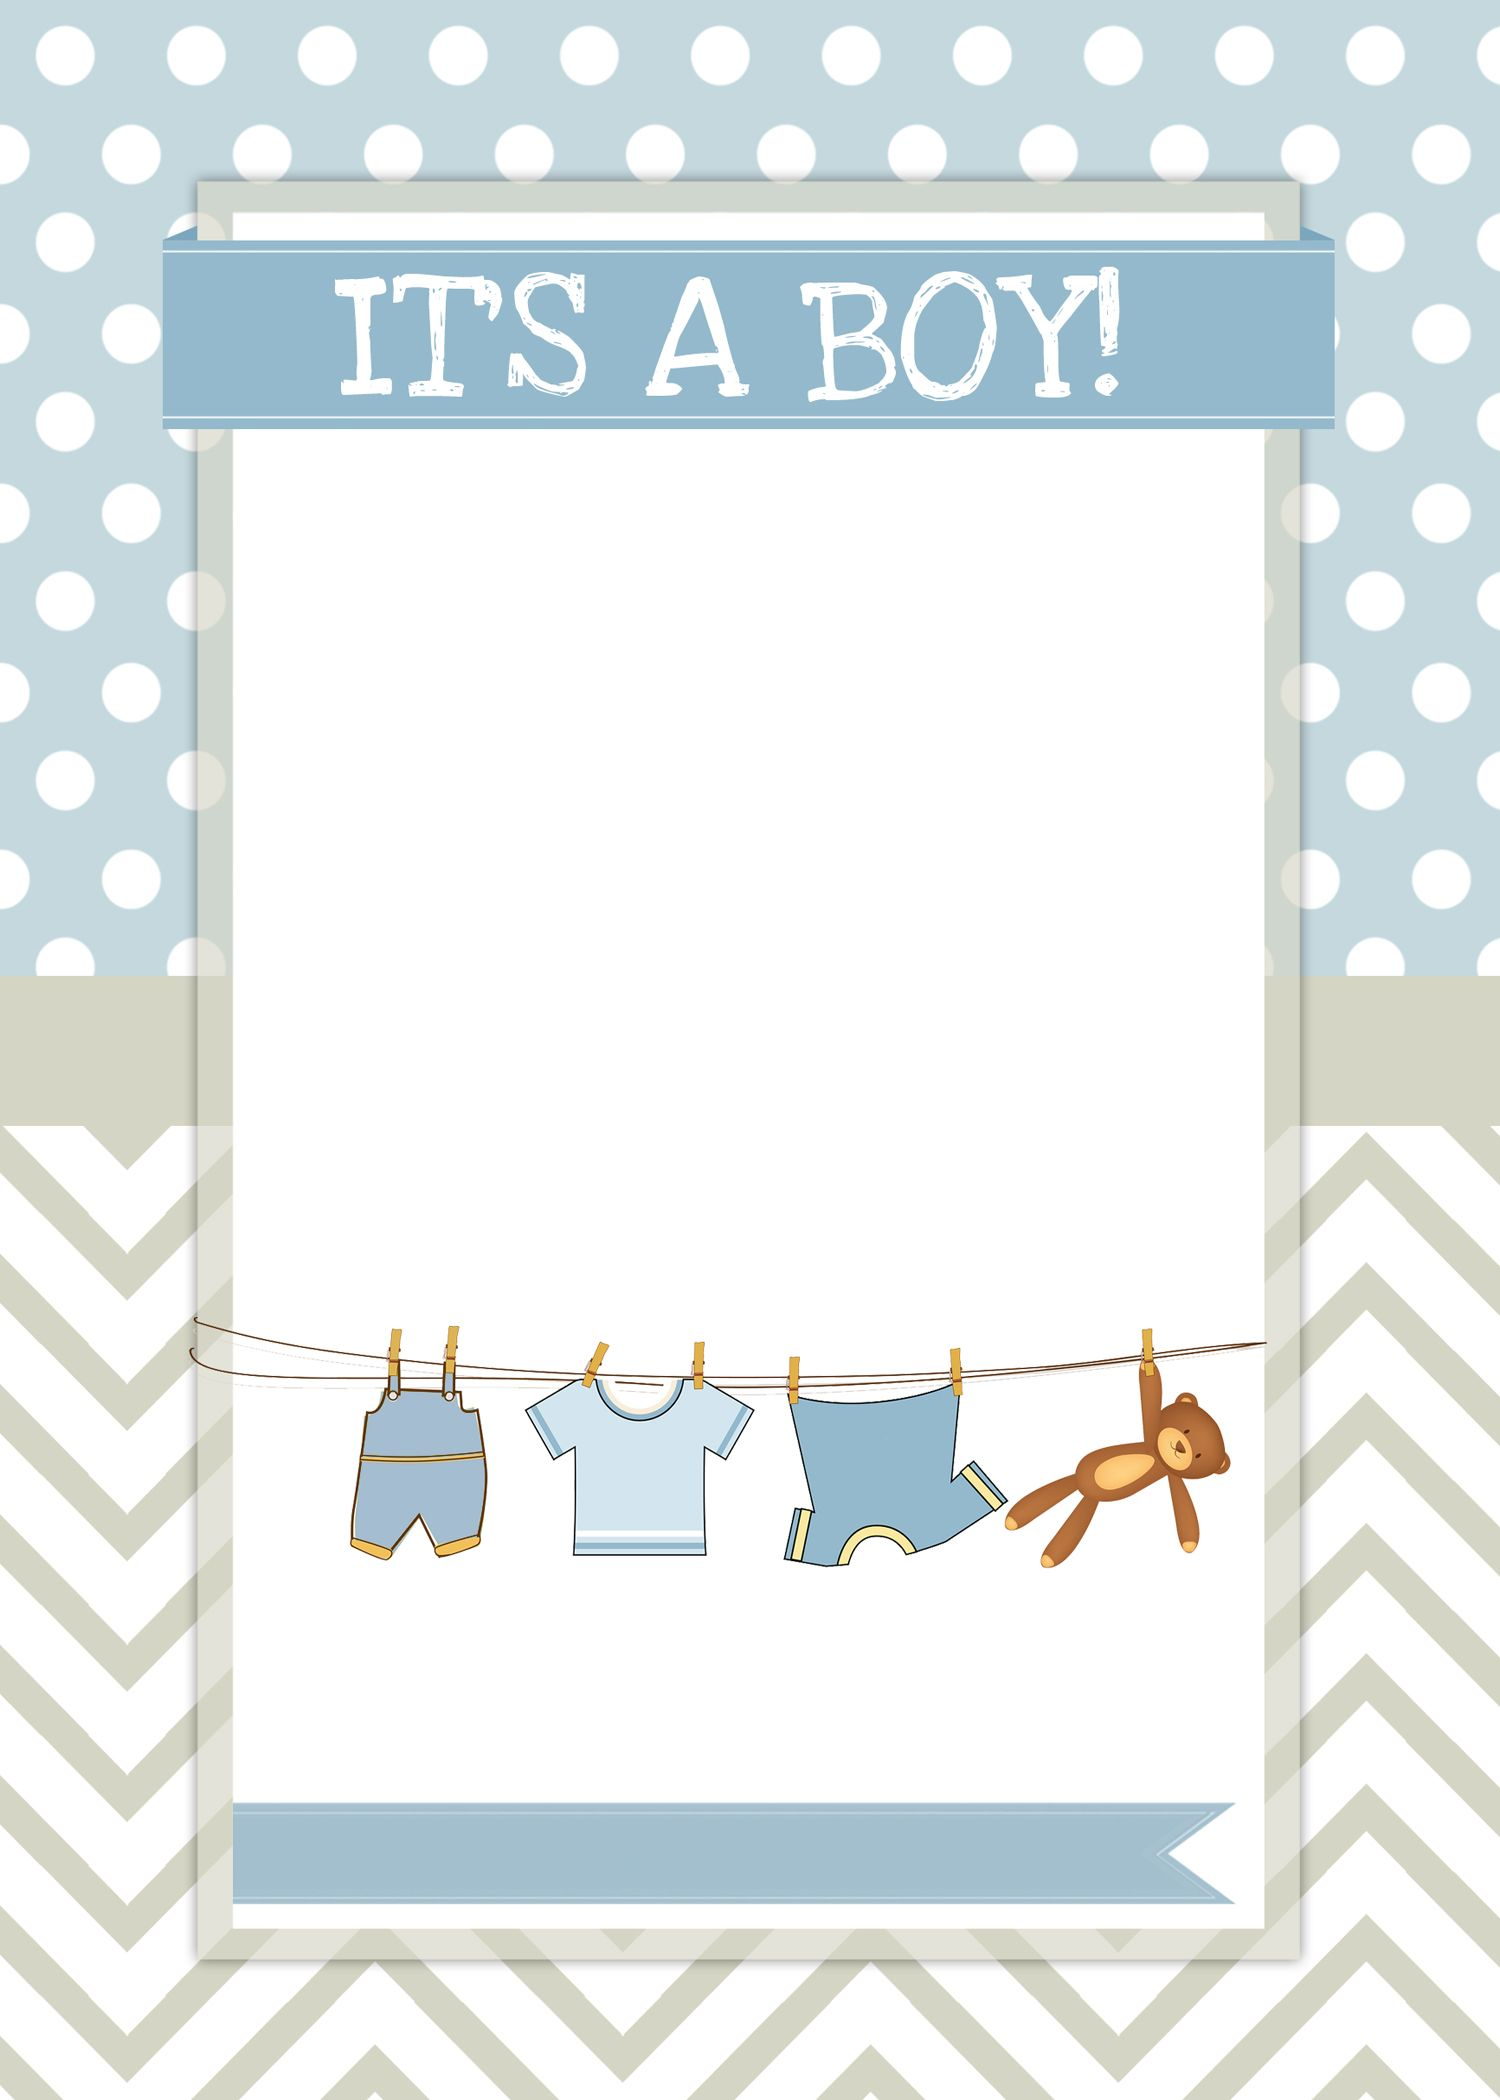 baby boy shower invite | abby and kevin | pinterest | boy baby showers, Baby shower invitations